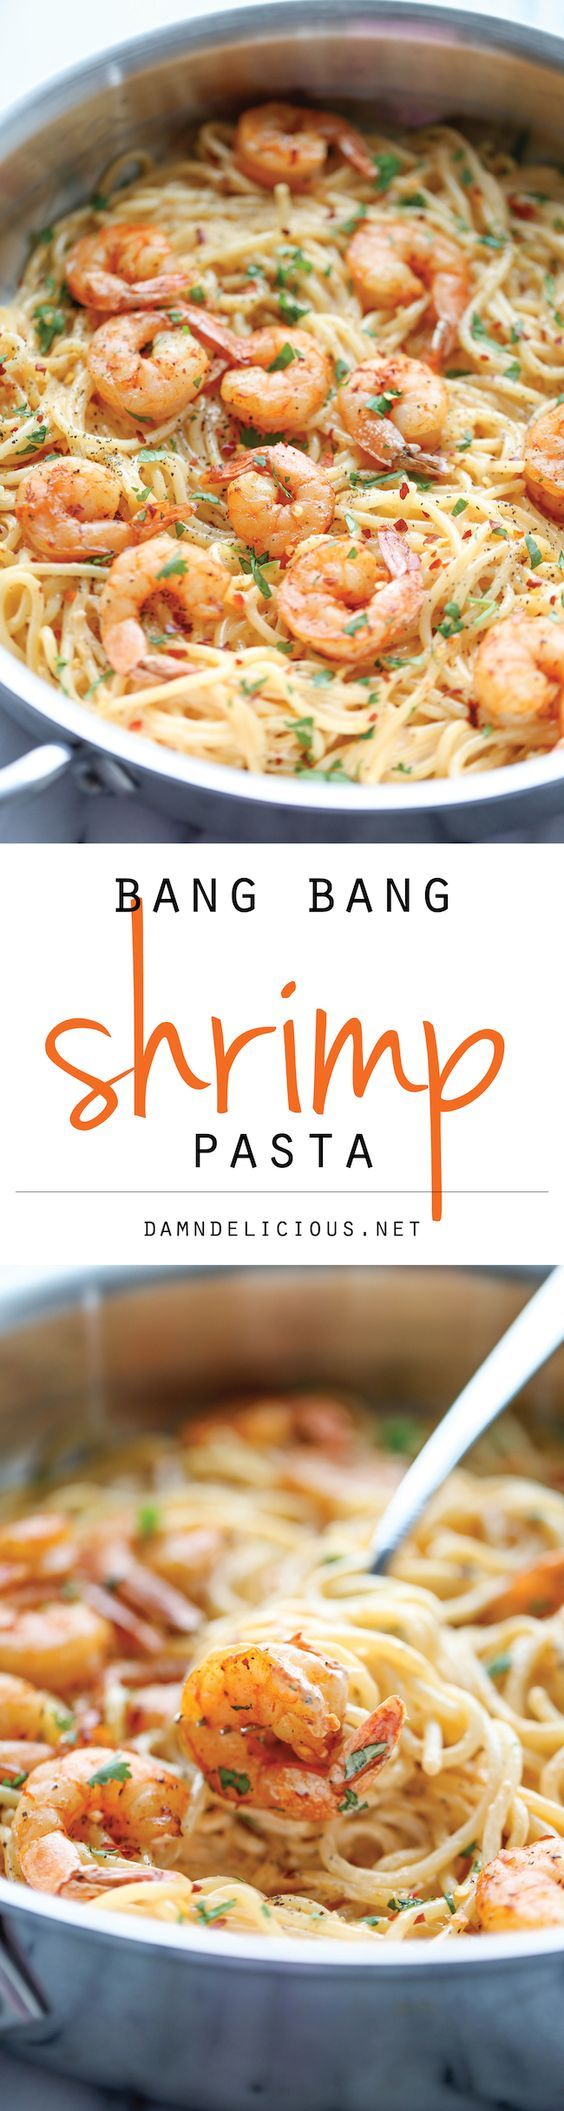 Bang Bang Shrimp Pasta - This was amazing! I used coconut oil in place of olive oil second time (will keep this change). I subbed ff greek yogurt for the mayo. It was still good but not as magical. Next time I will make it half yogurt and half mayo and compare results. (Half mayo and half ff greek yogurt was good. I'm keeping that change.) I use stir-fry rice noodles. For 4 people, double recipe. ~S